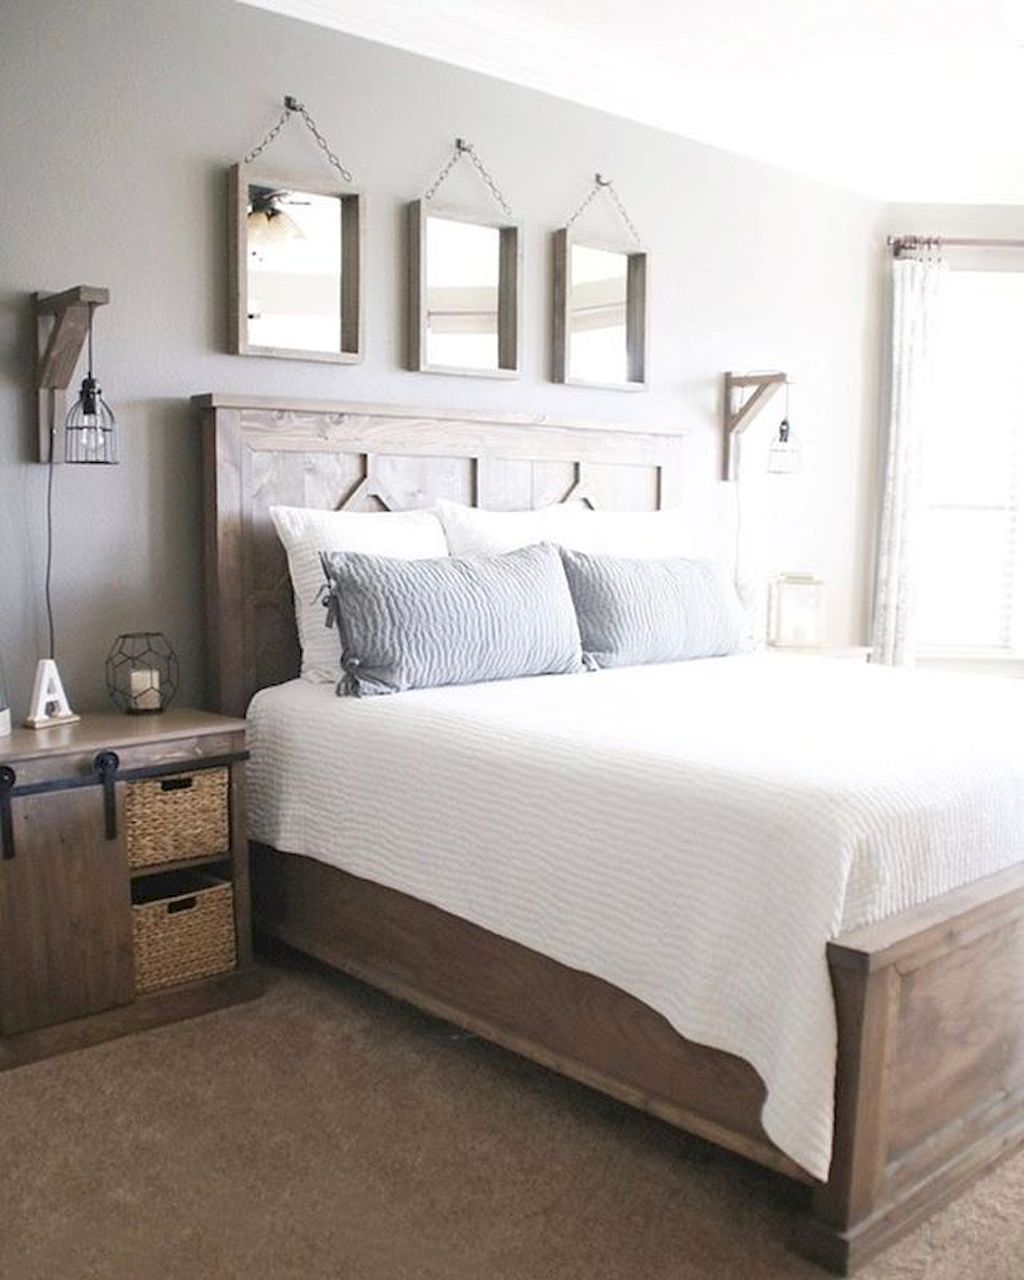 Rustic farmhouse style master bedroom ideas (22) Cabin